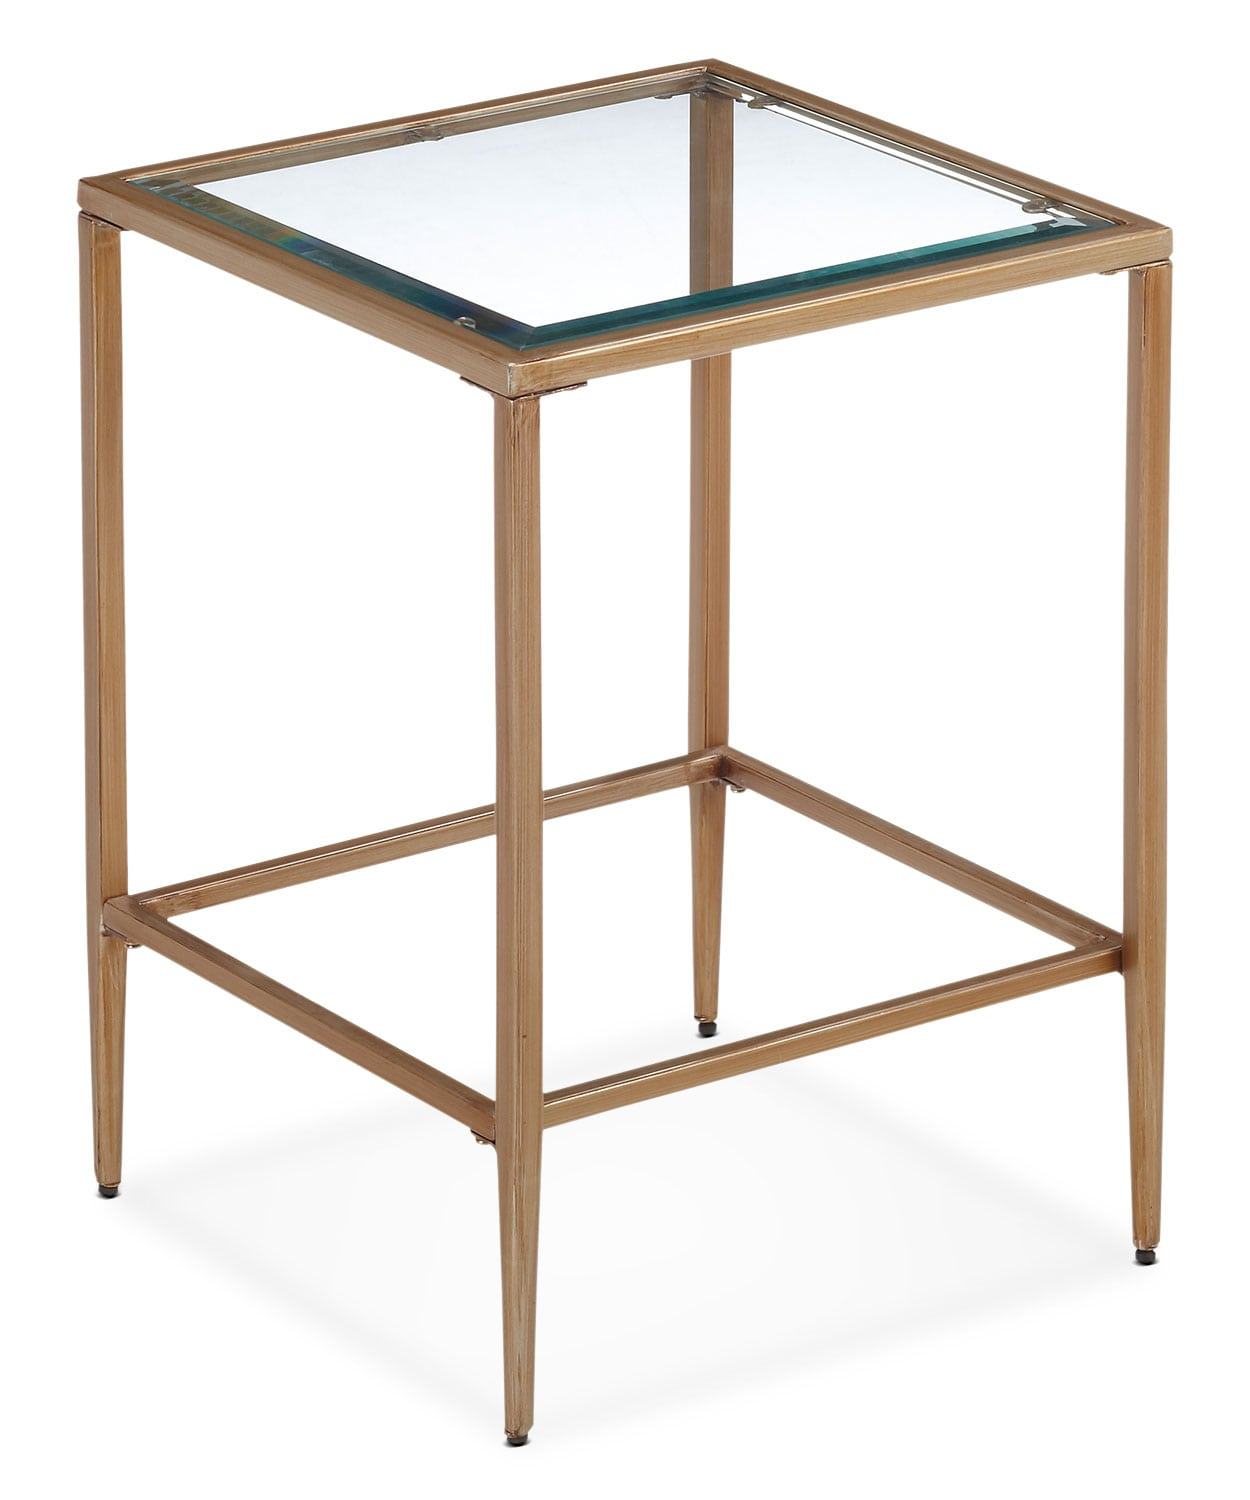 Harlan End Table - Glass and Gold